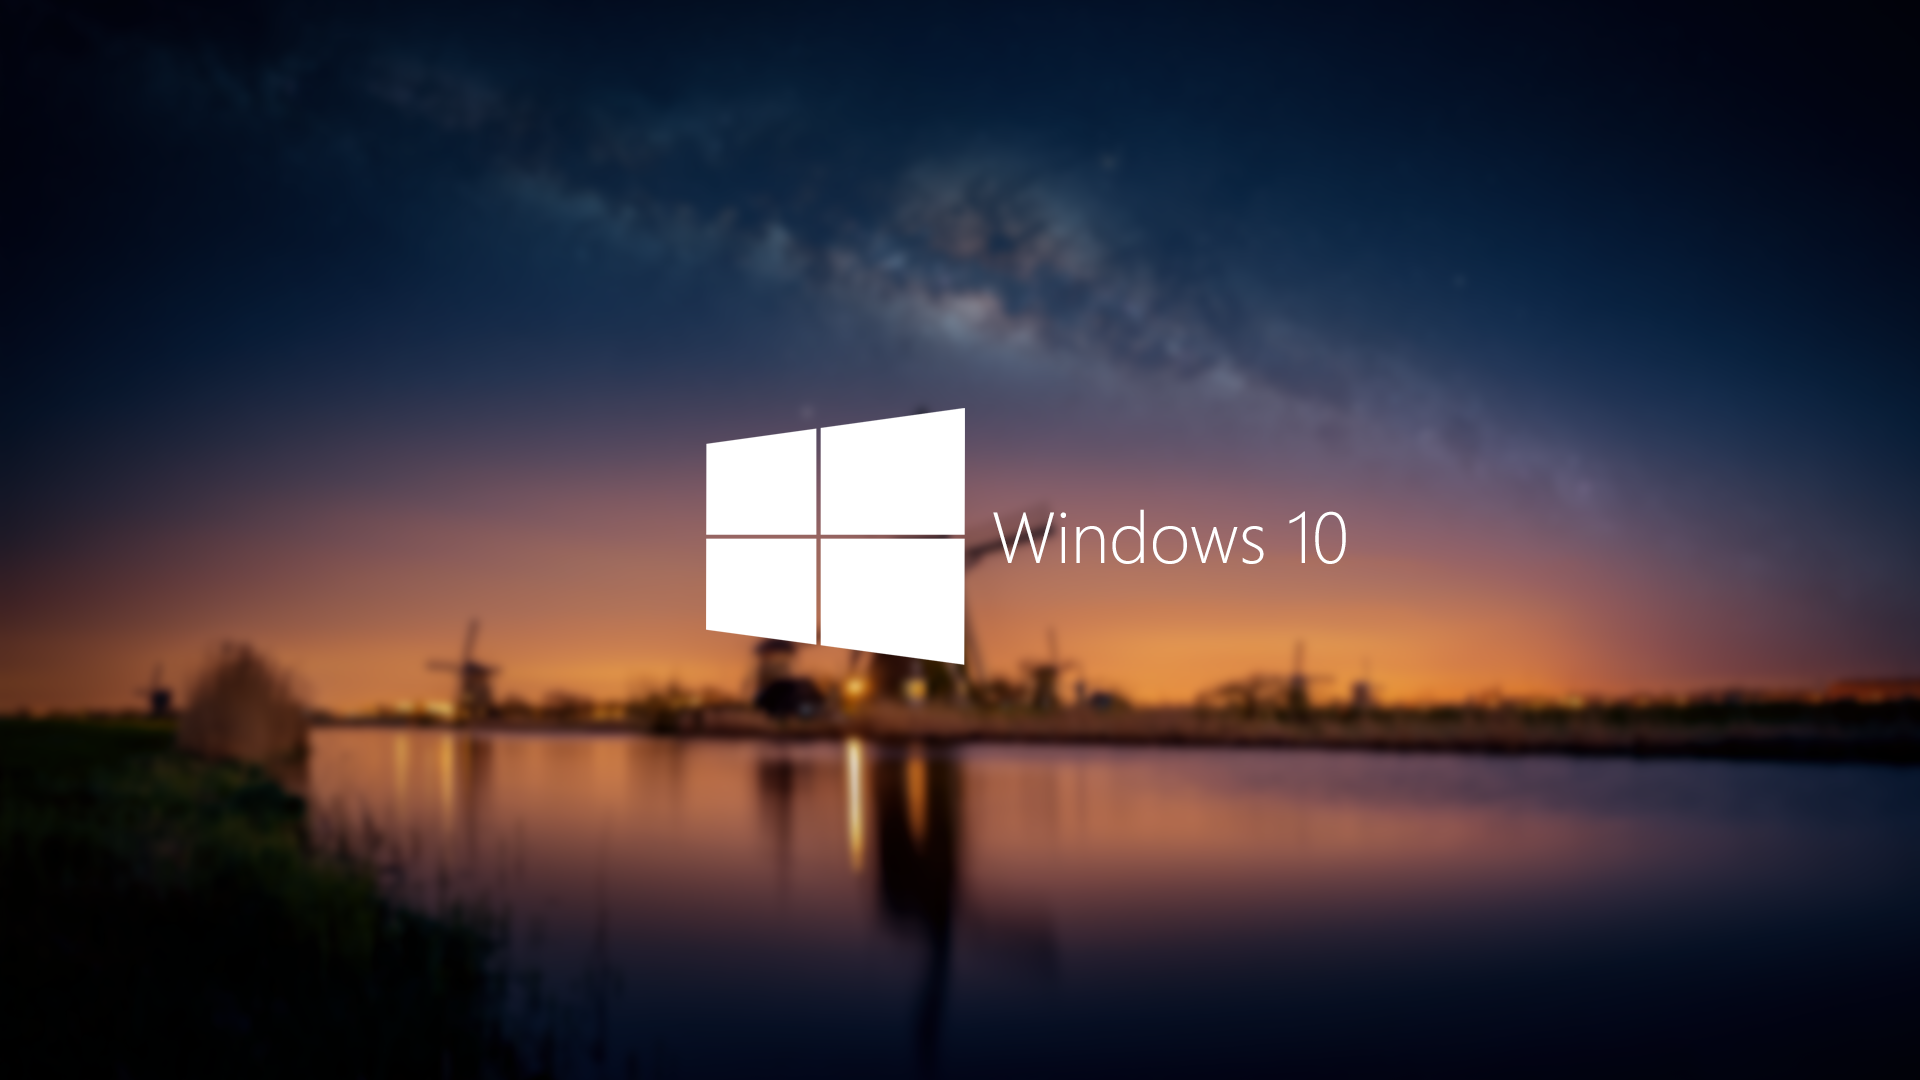 High Quality PC (Win10) Windows 10 Photos: BsnSCB Graphics